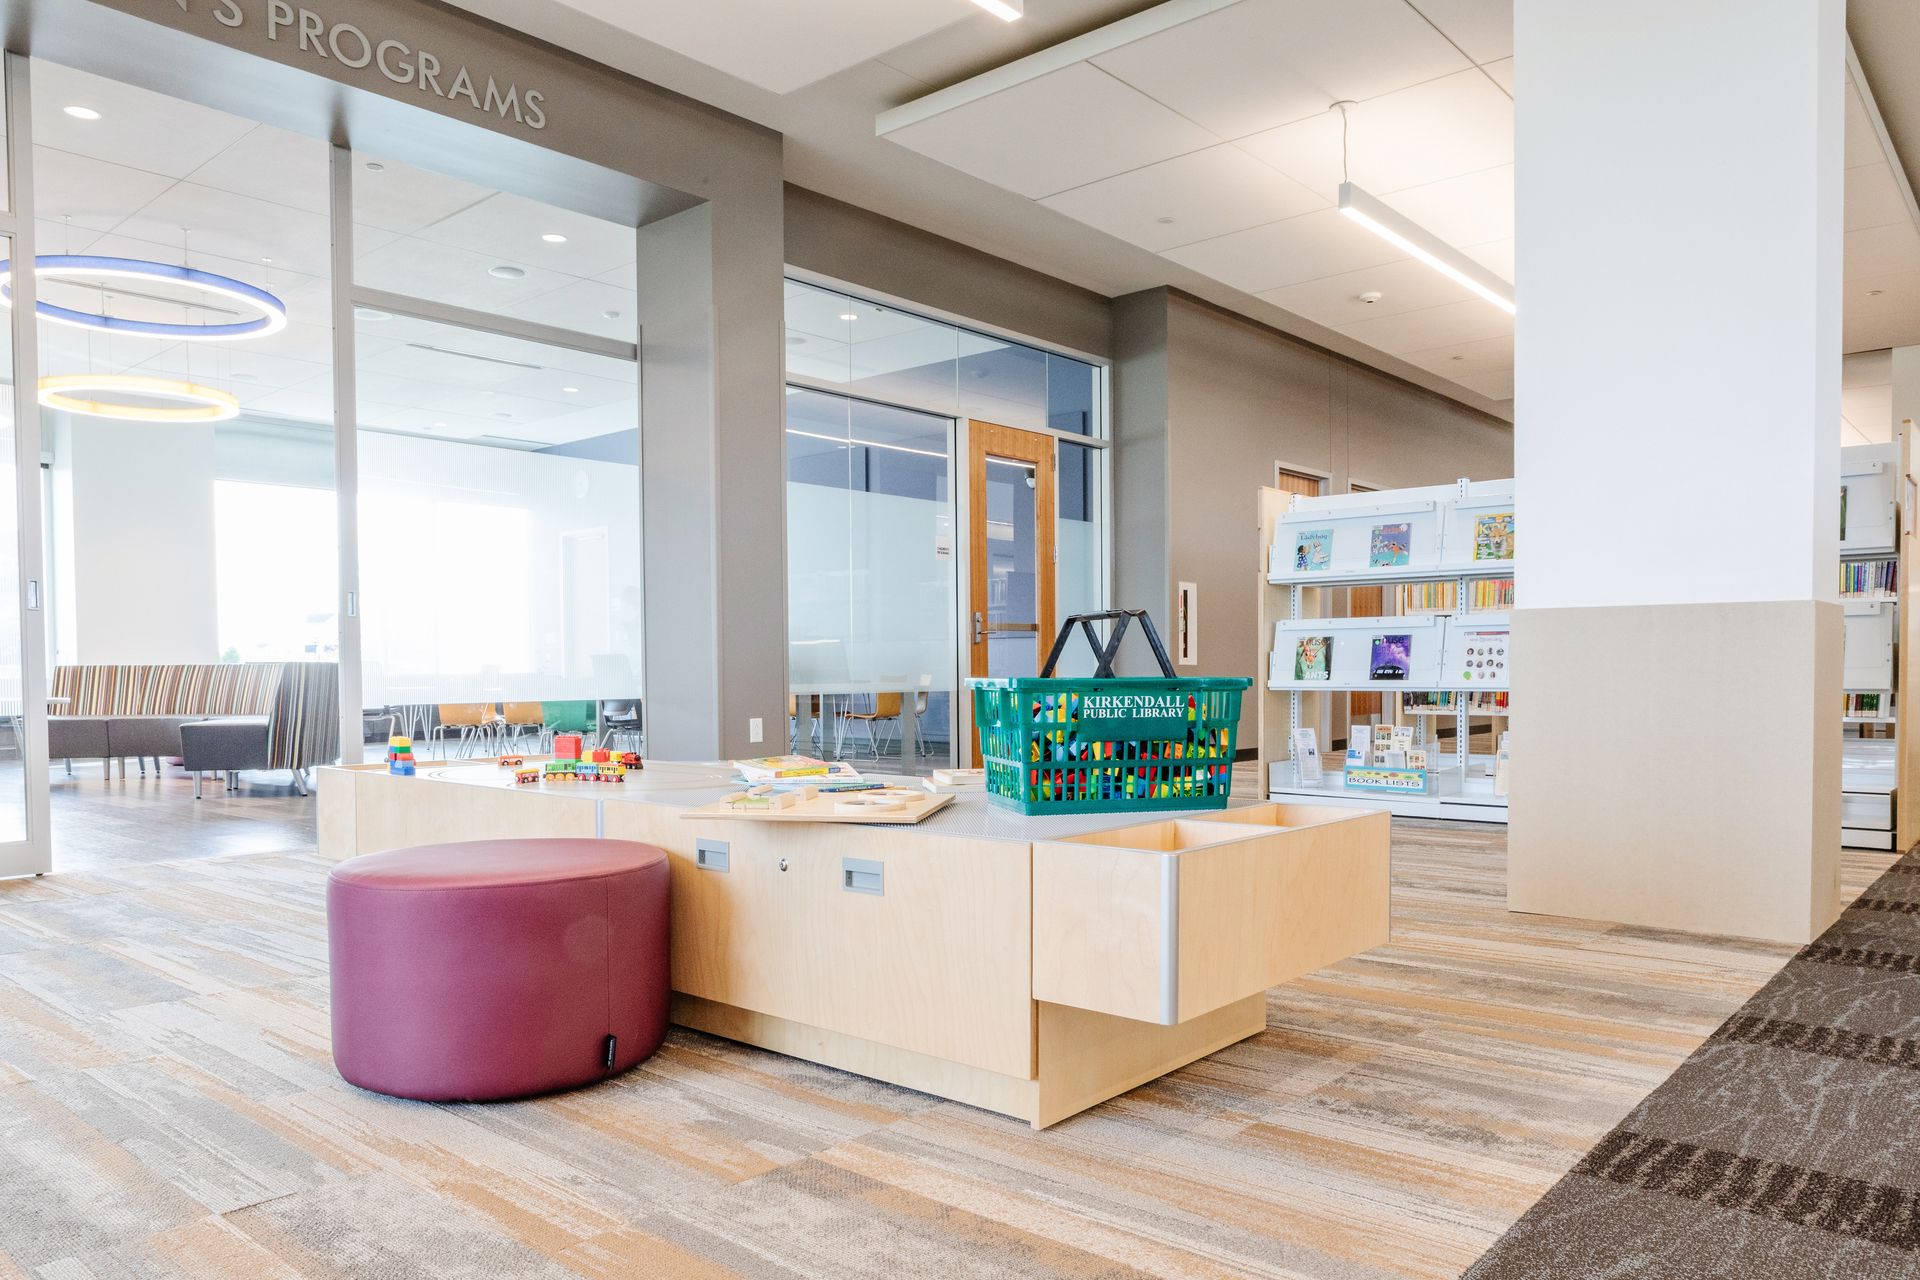 Stahl Construction Ankeny Kirkendall Public Library Interior Open Activity Spaces and Versatile Tables and Seating